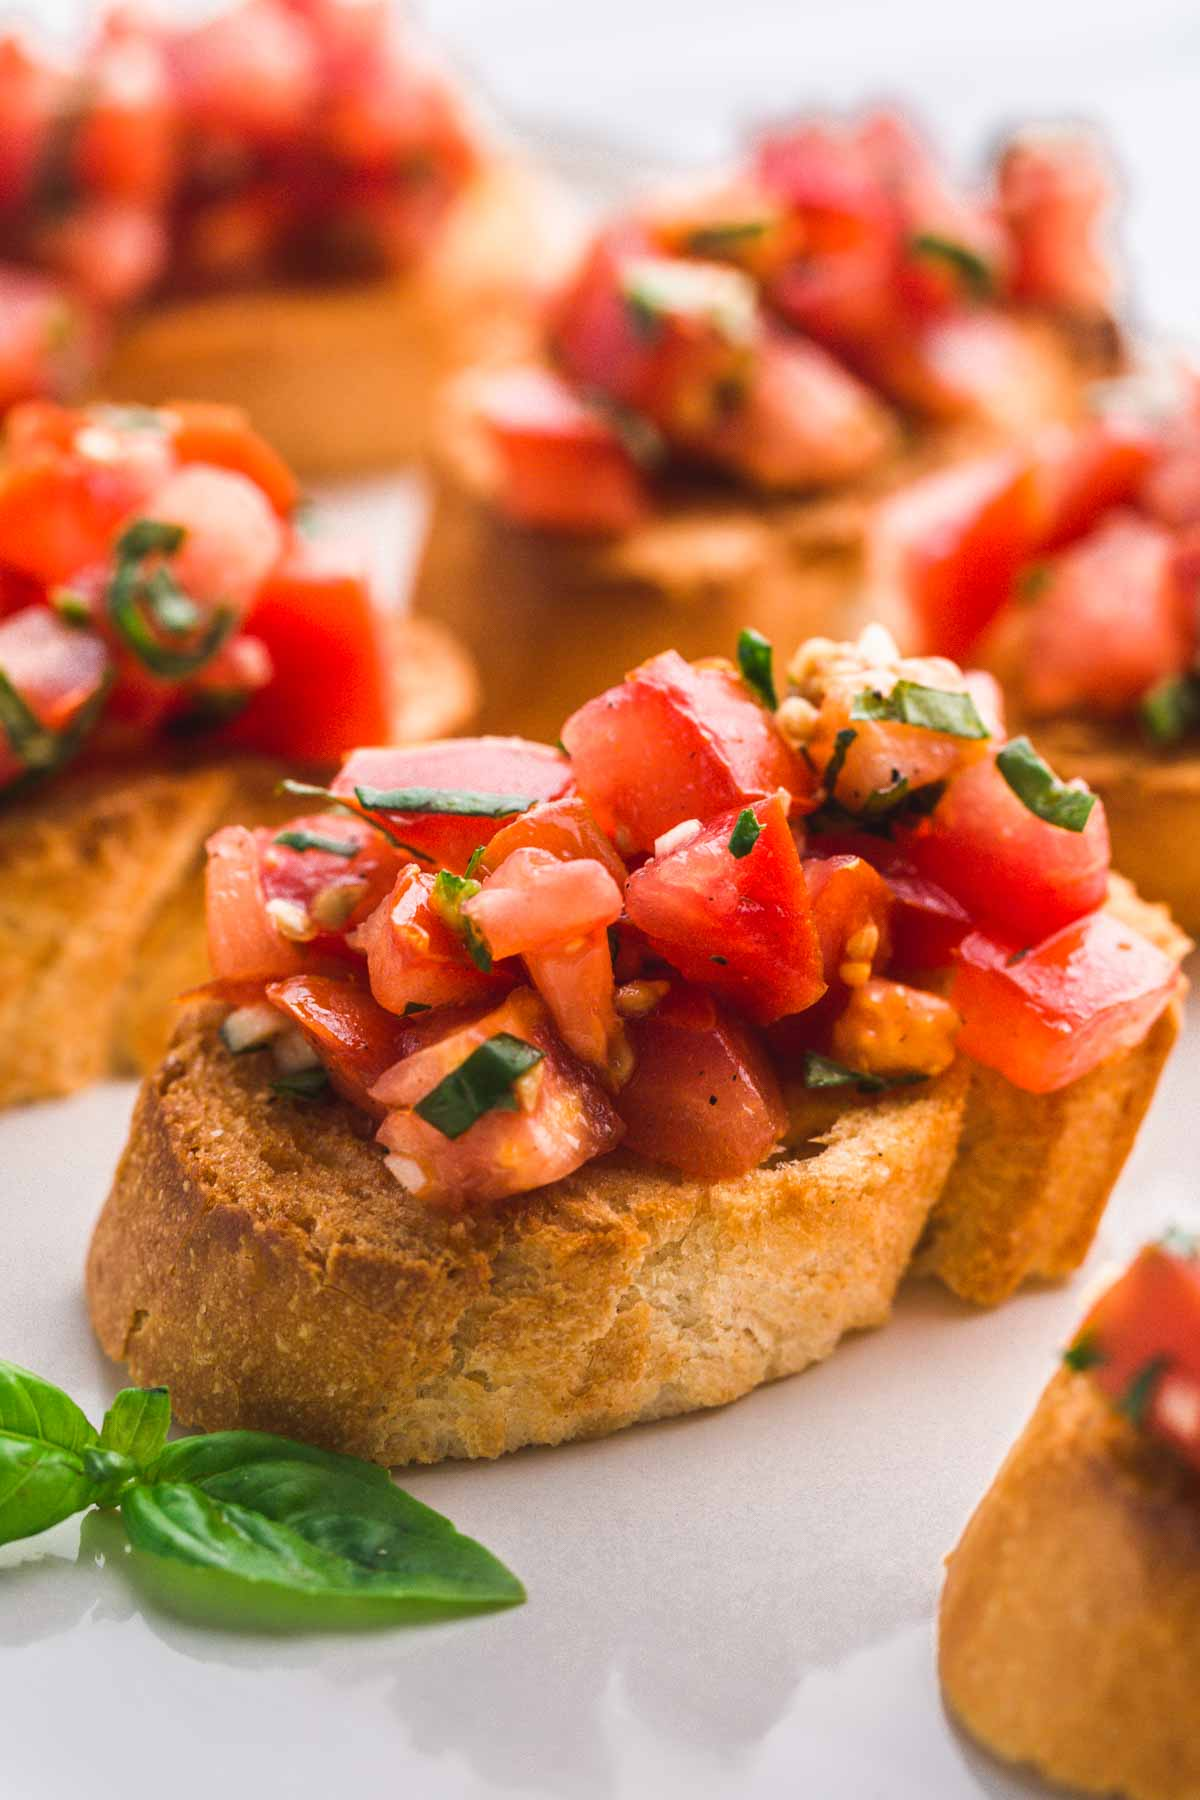 A close up of a Bruschetta topped with tomato basil salad